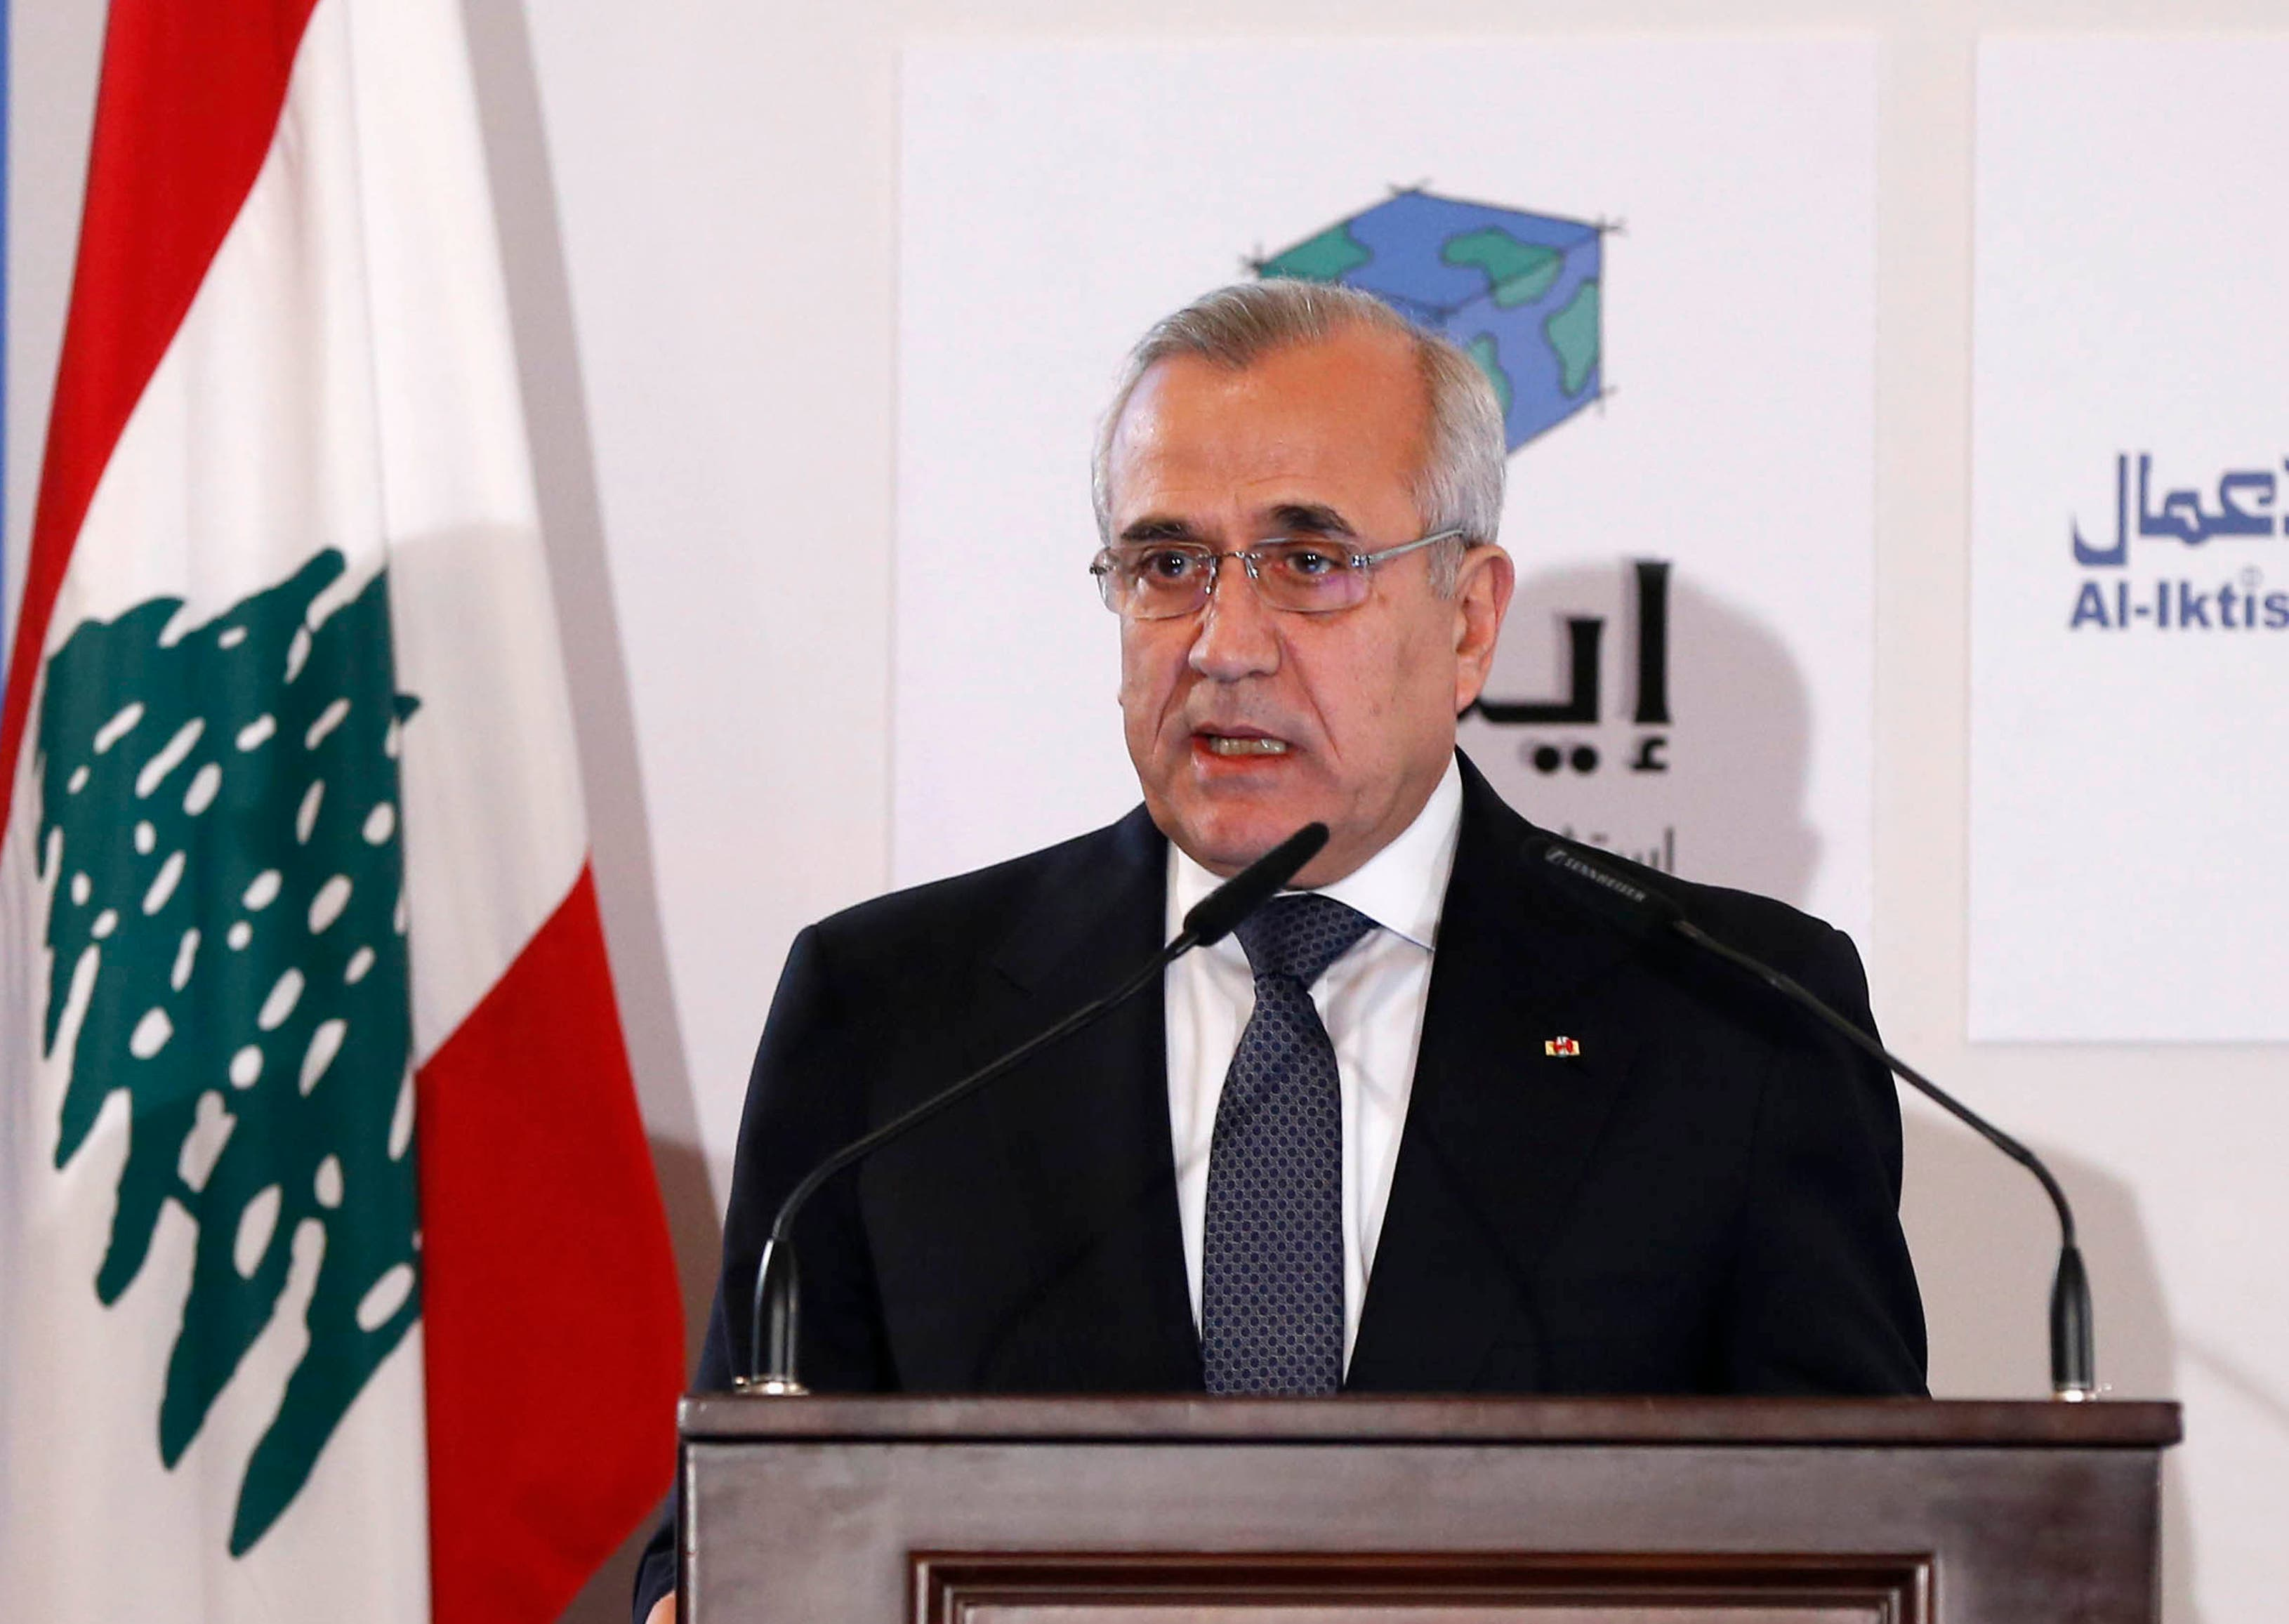 Lebanon's President Michel Suleiman speaks during the third Lebanon Economic Forum in Beirut March 8, 2014. (File photo: Reuters)